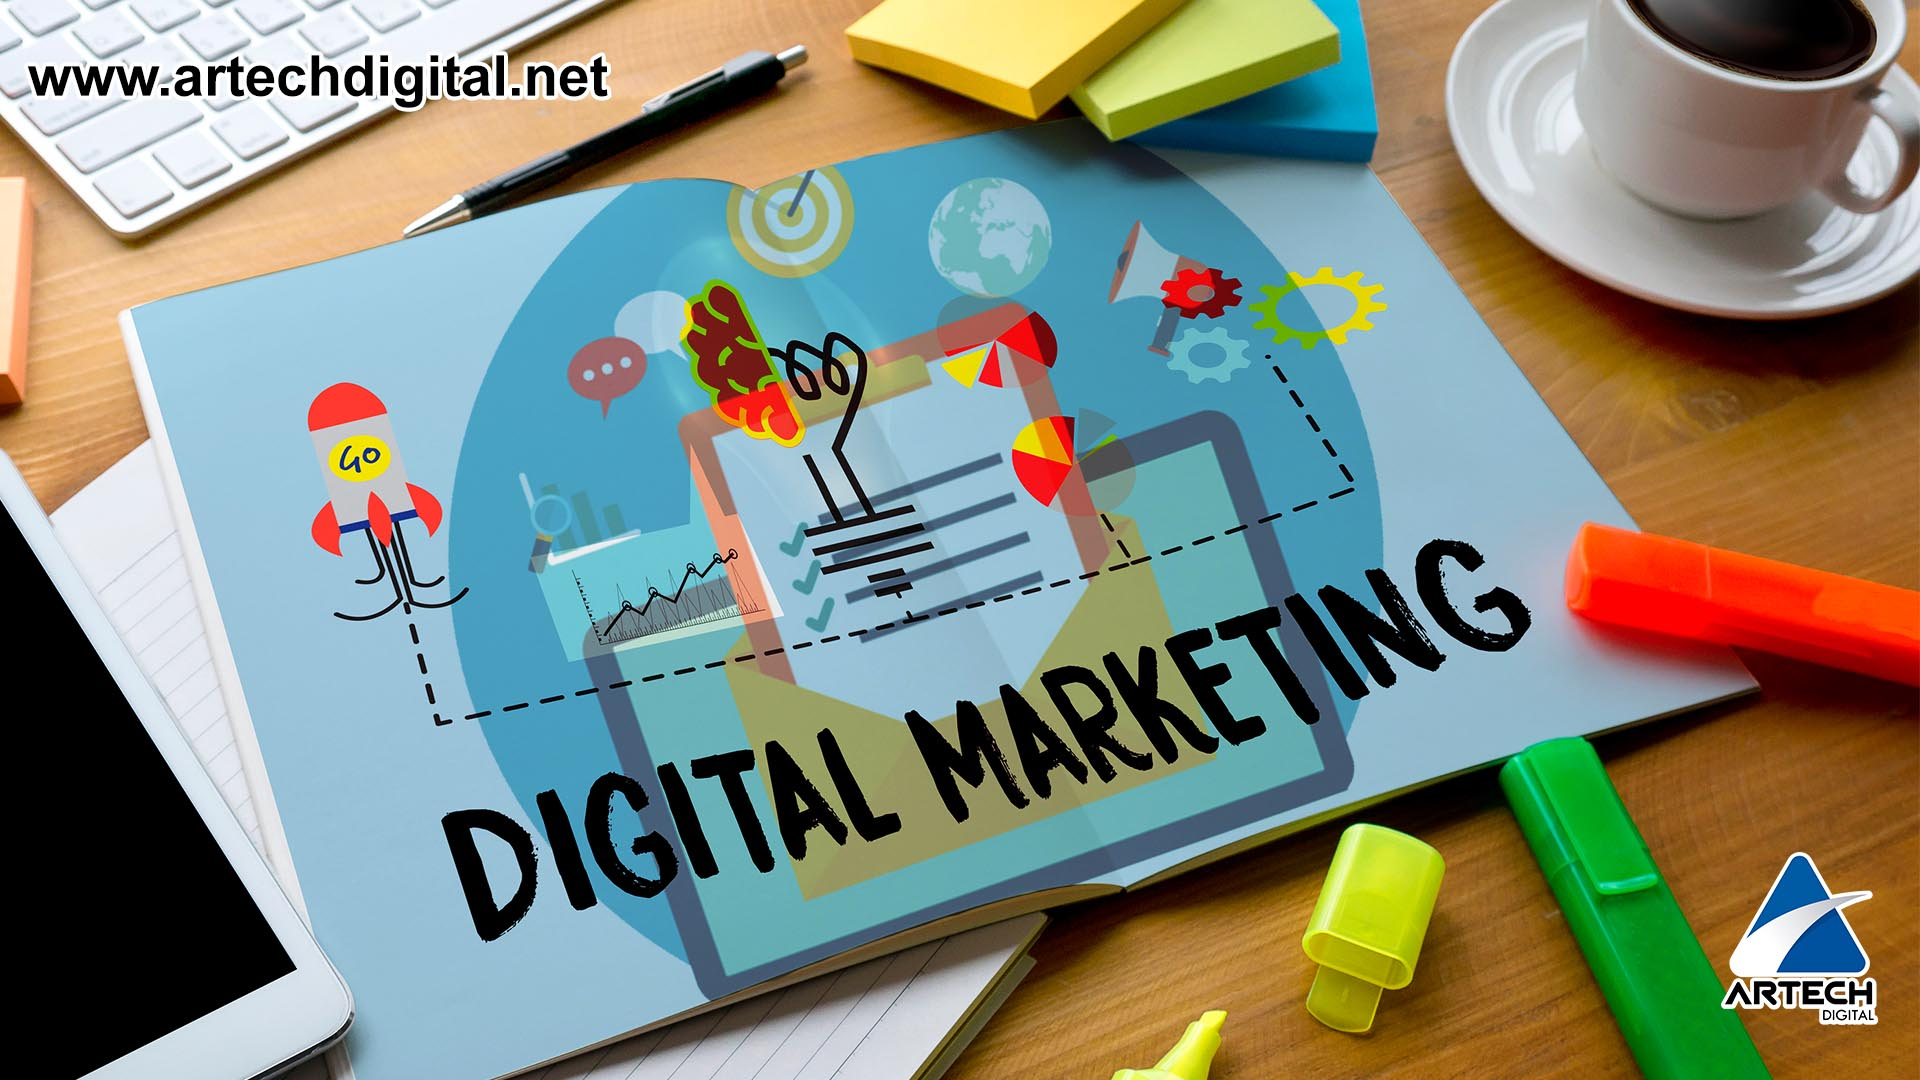 Digital Marketing Strategies - Artech Digital